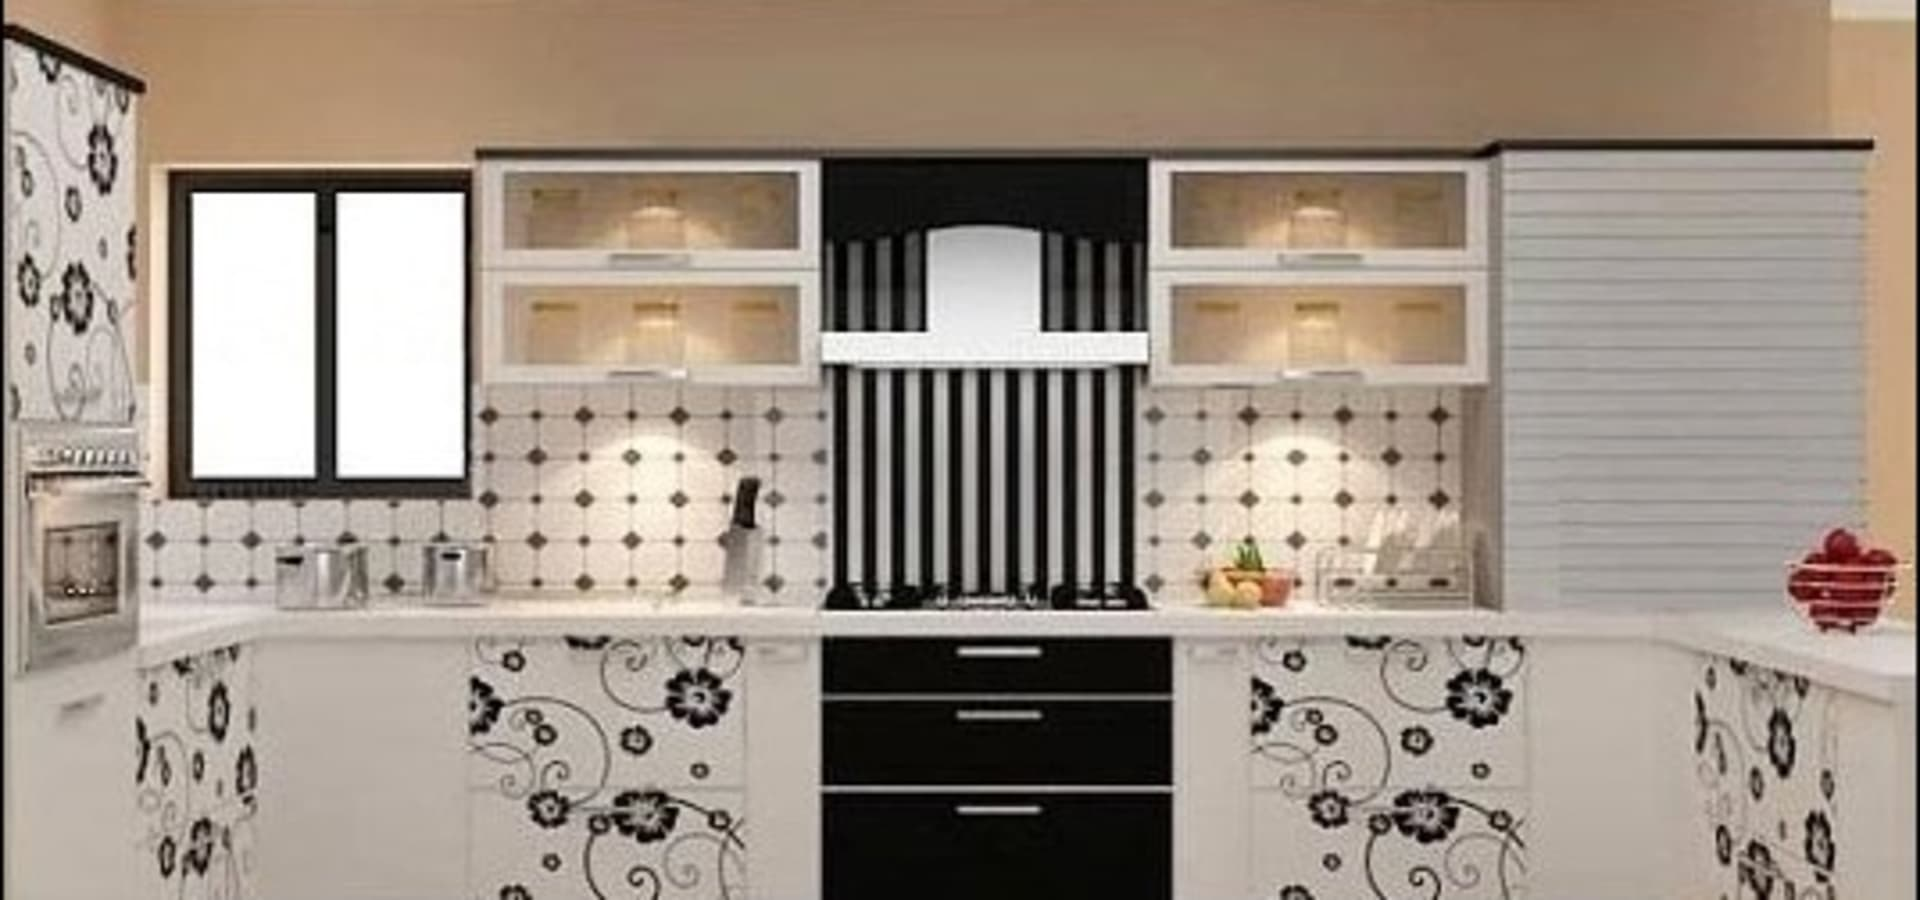 Dream Modular Kitchens by NBA CORPORATION | homify